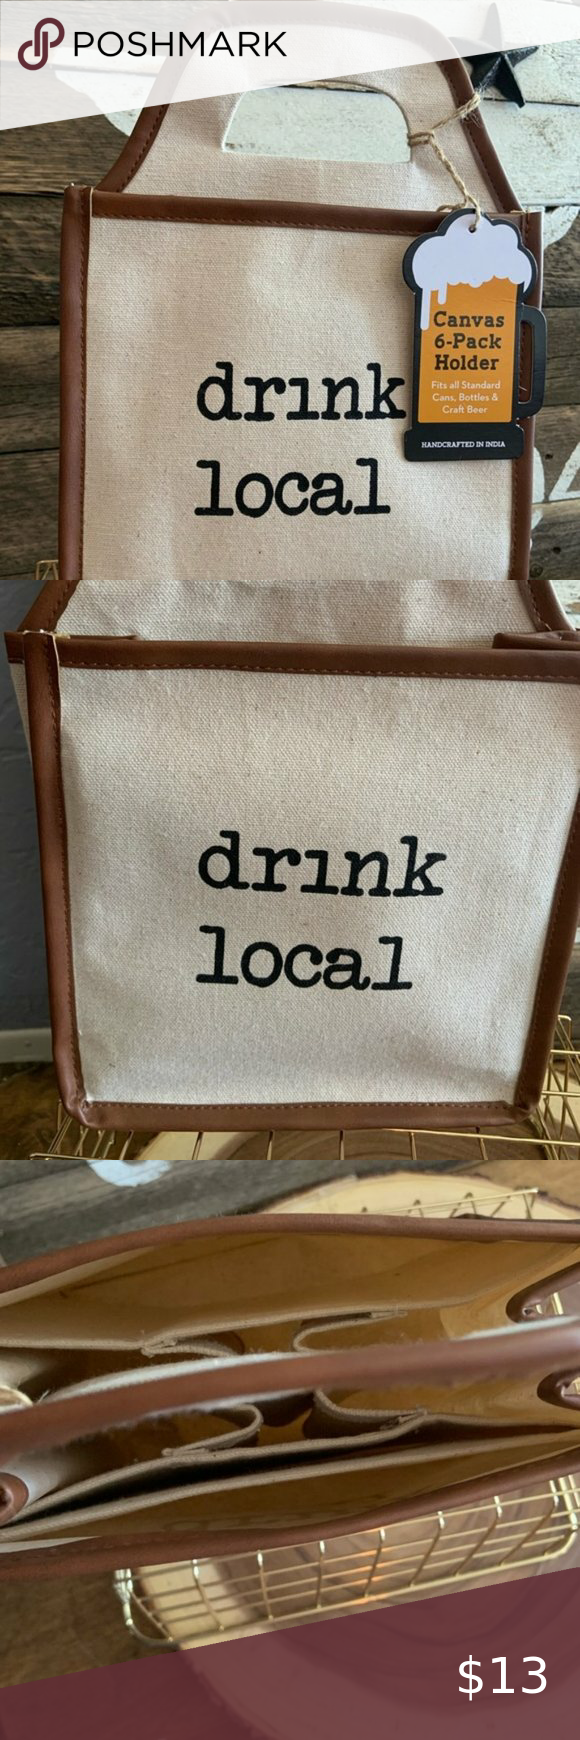 17+ Local craft beer gift info